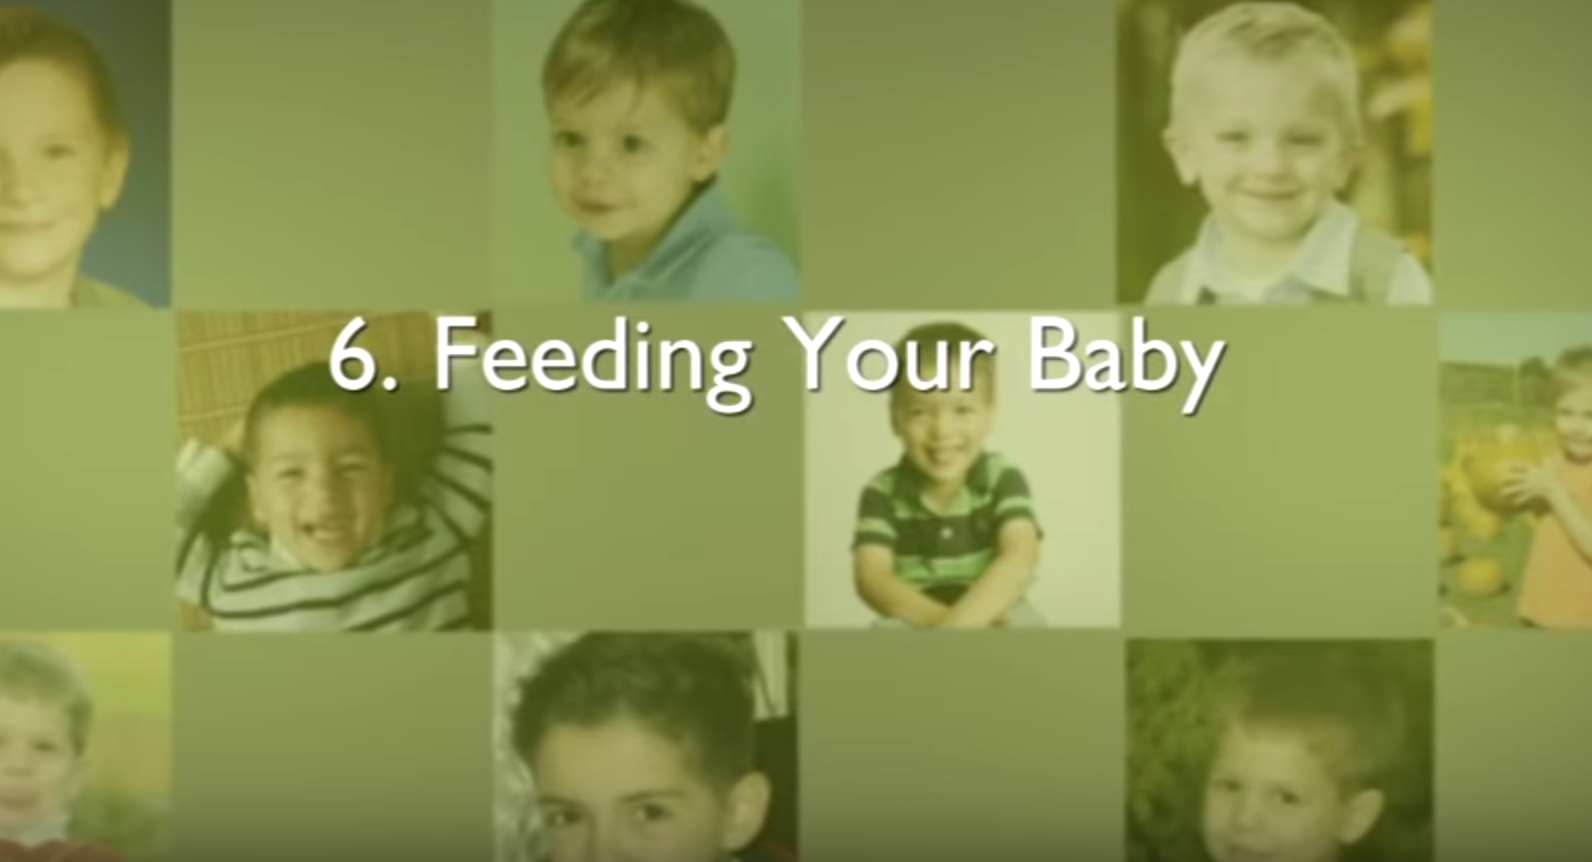 Chapter 6 – Feeding Your Baby